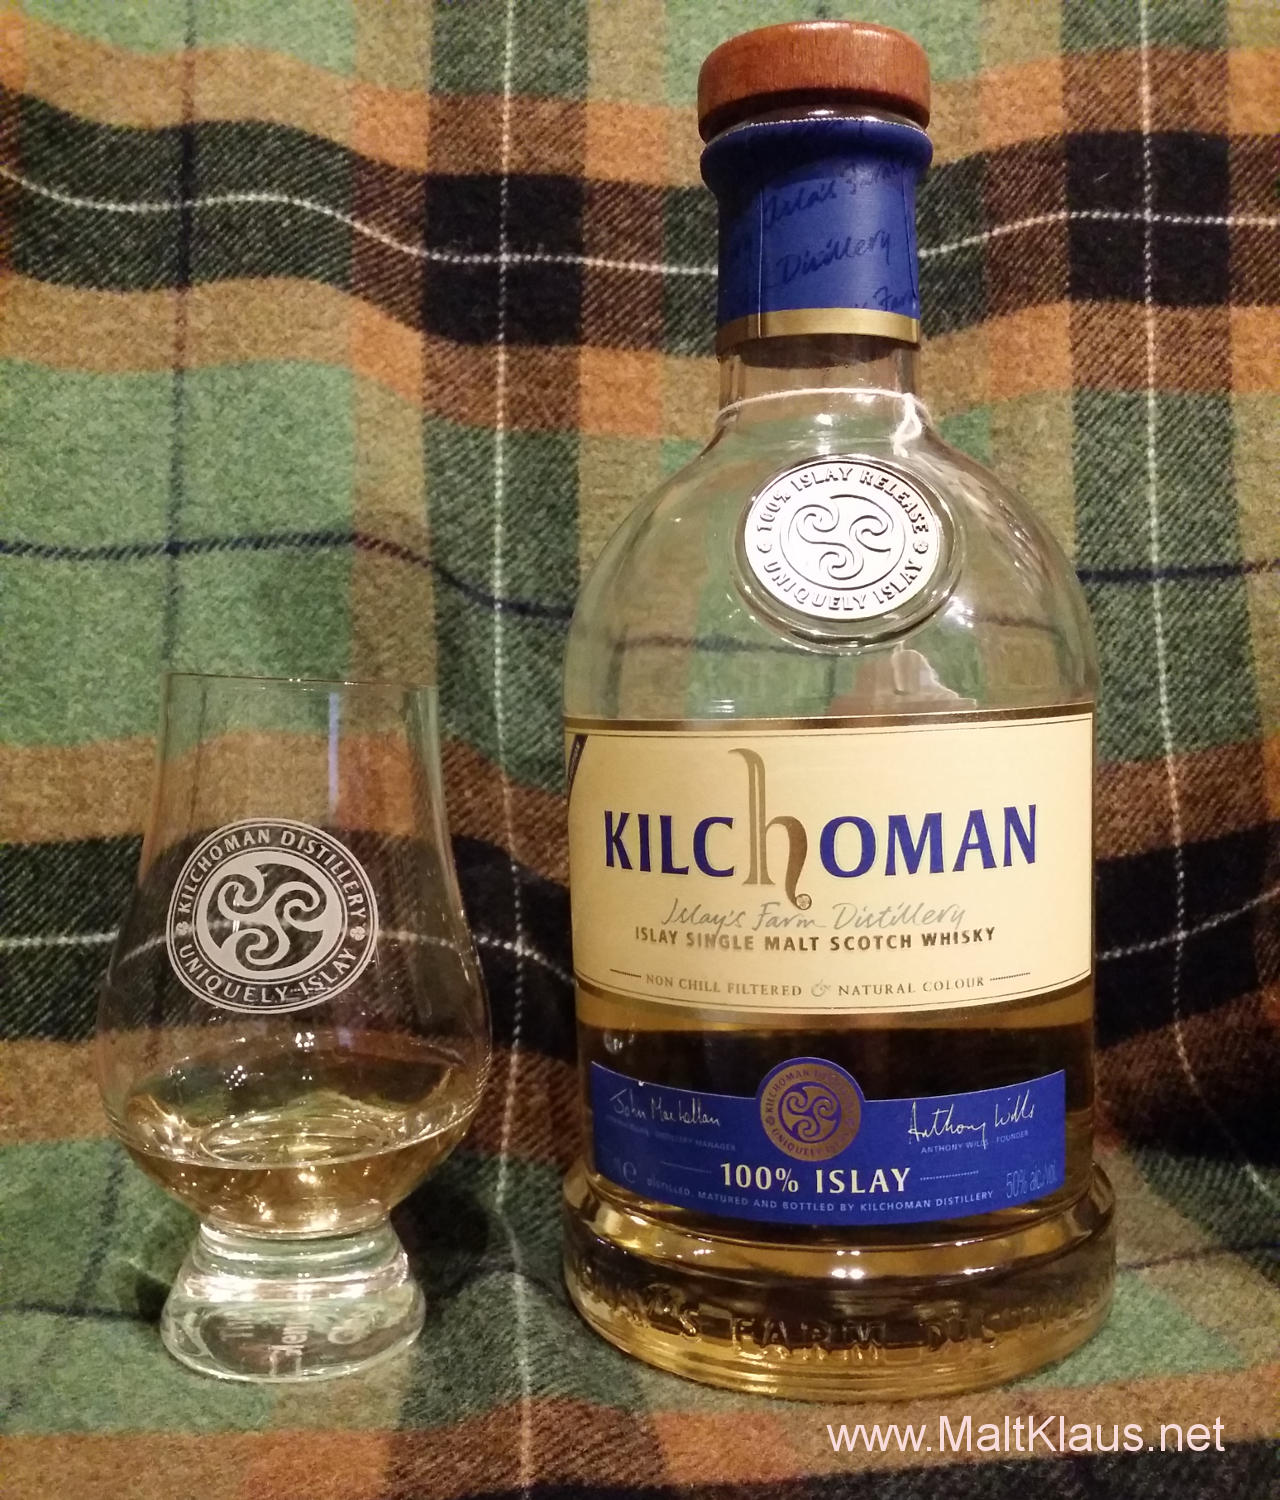 Kilchoman 100% Islay 5th edition / 2015